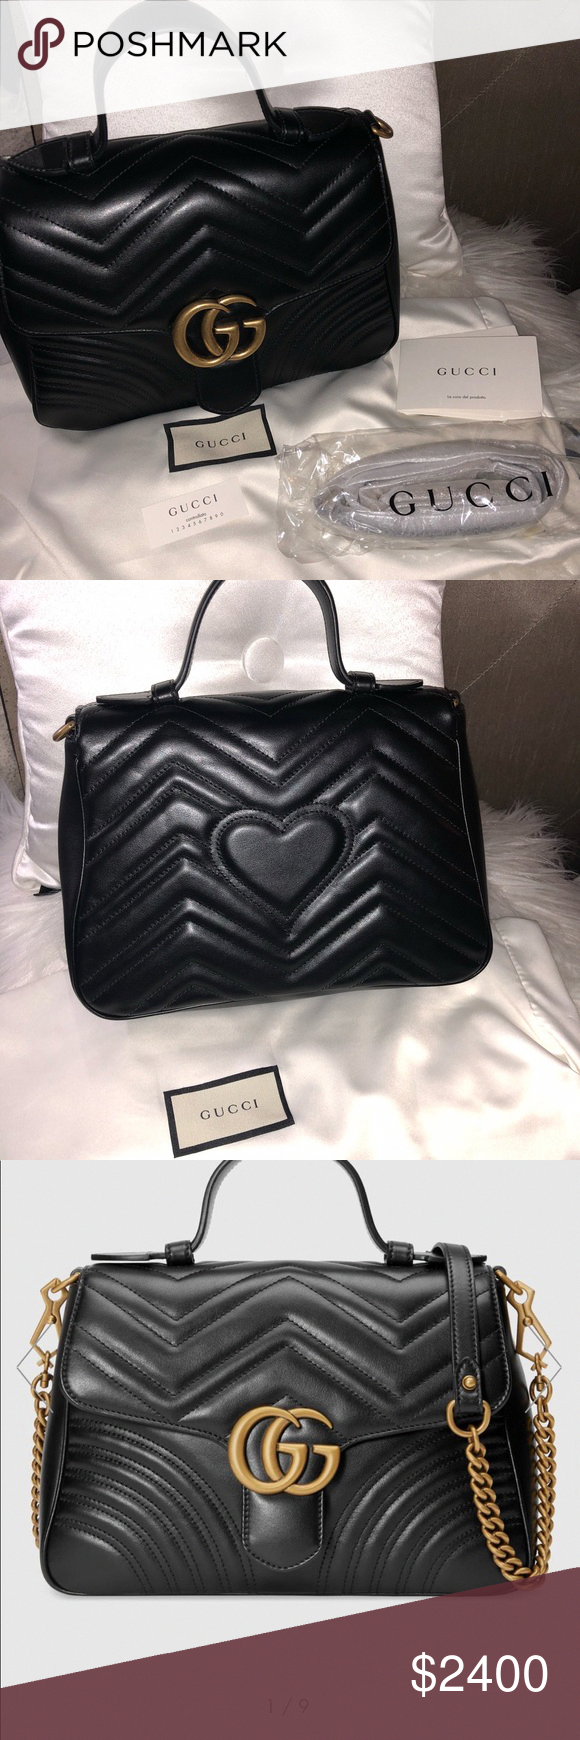 f2bf308a8dfd Spotted while shopping on Poshmark: GG Marmont small top handle bag! # poshmark #fashion #shopping #style #Gucci #Handbags #Guccihandbags